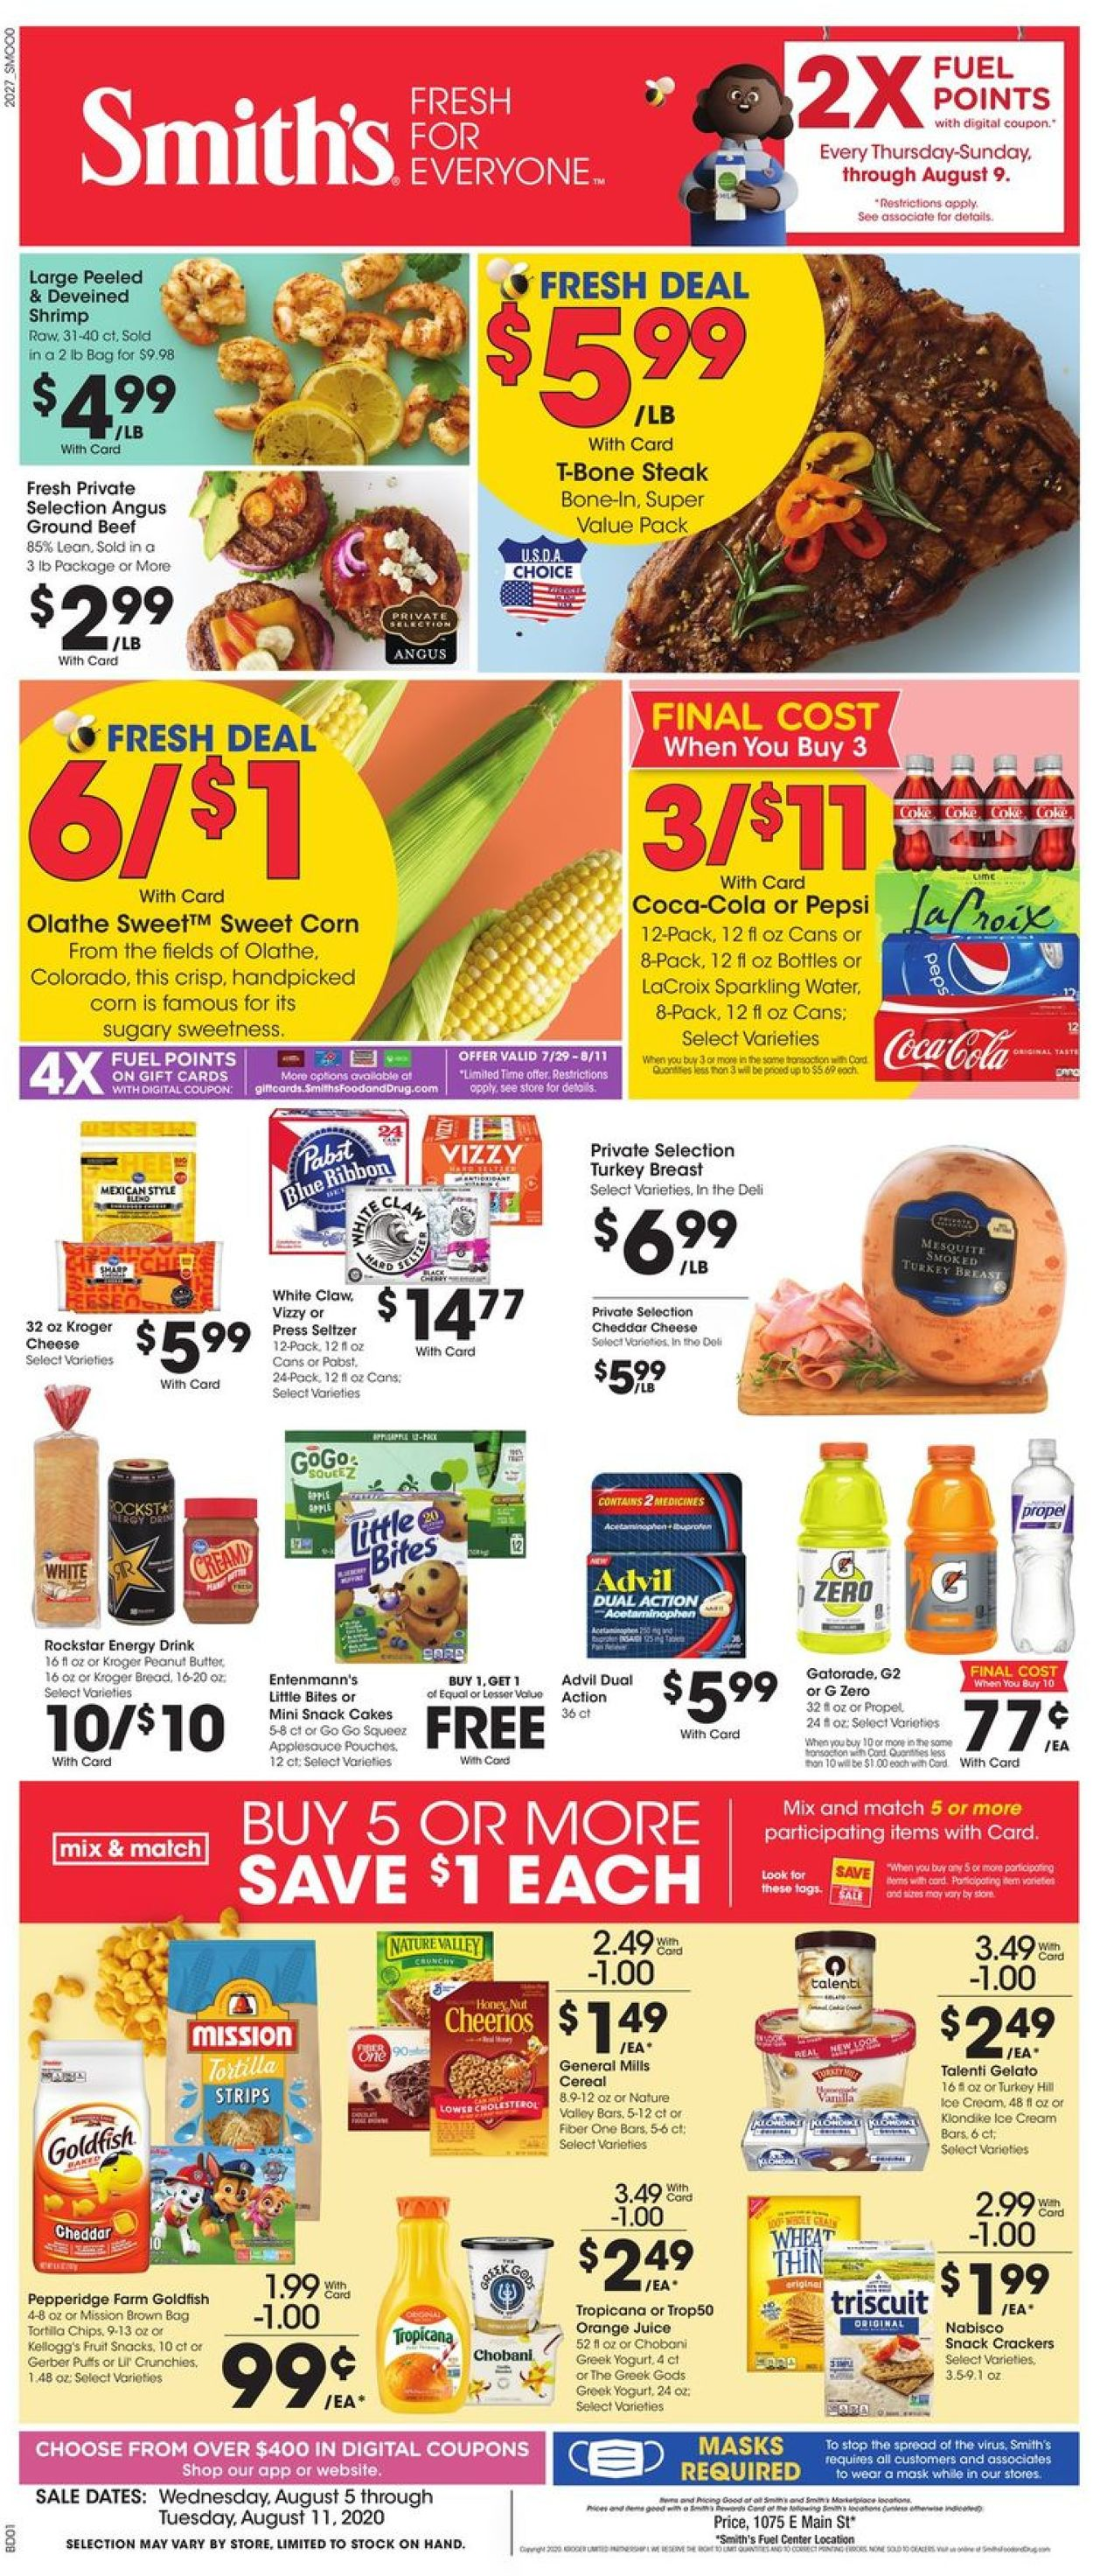 Smith's Weekly Ad Circular - valid 08/05-08/11/2020